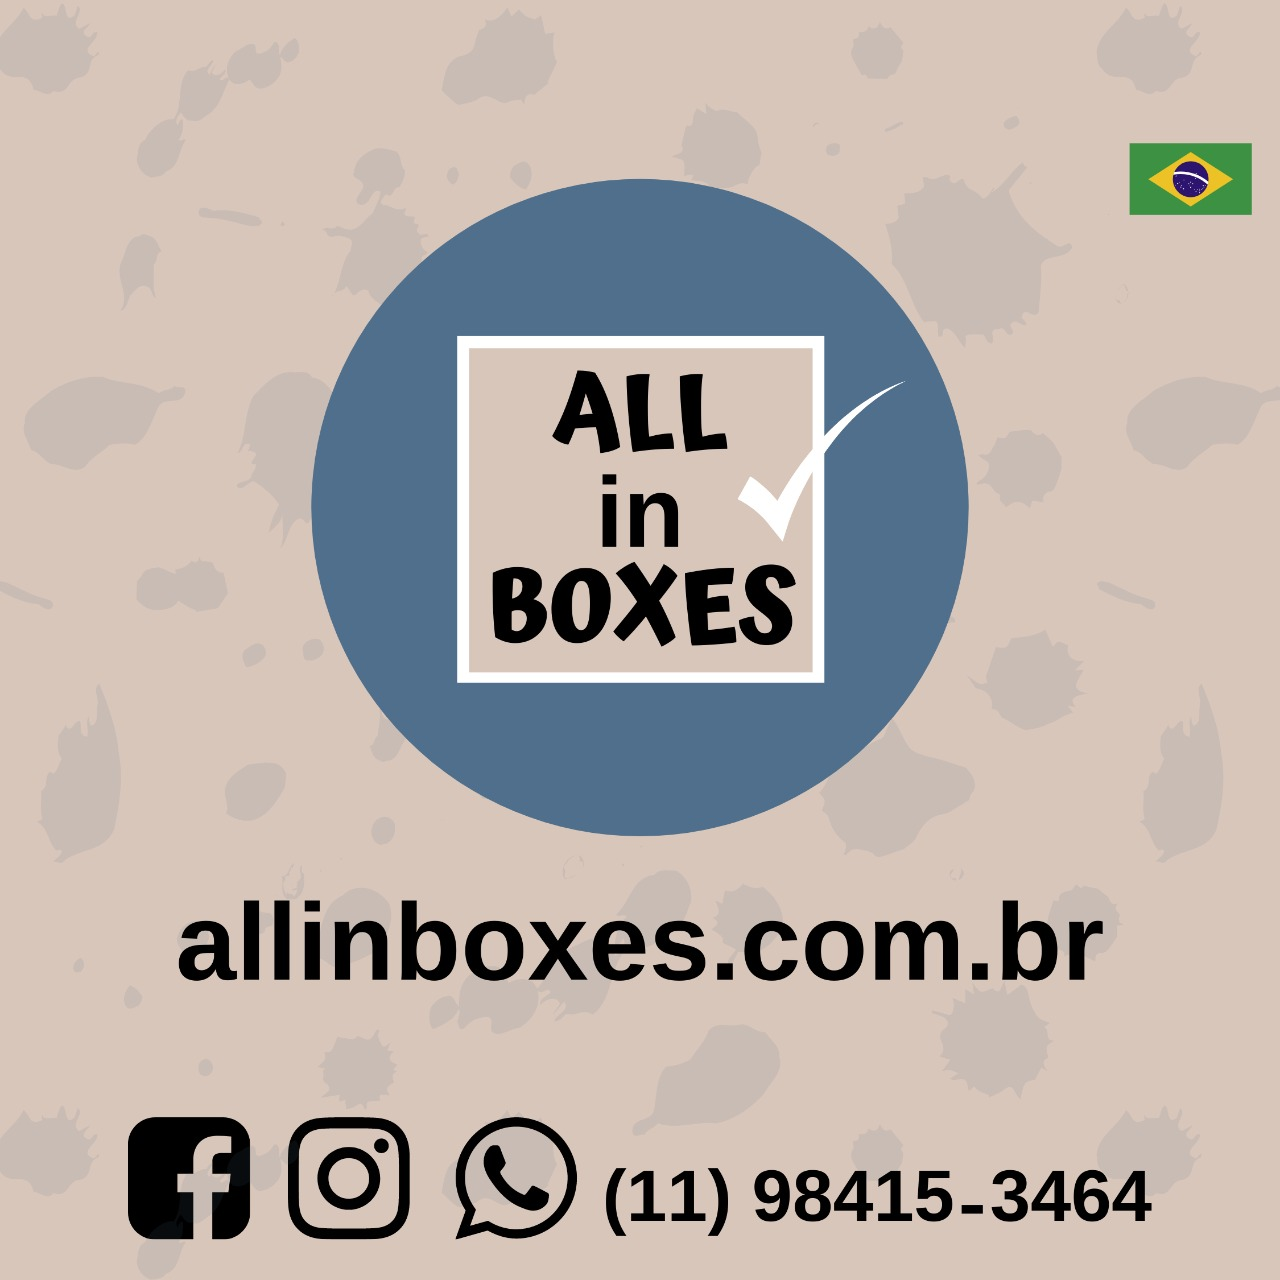 All in boxes